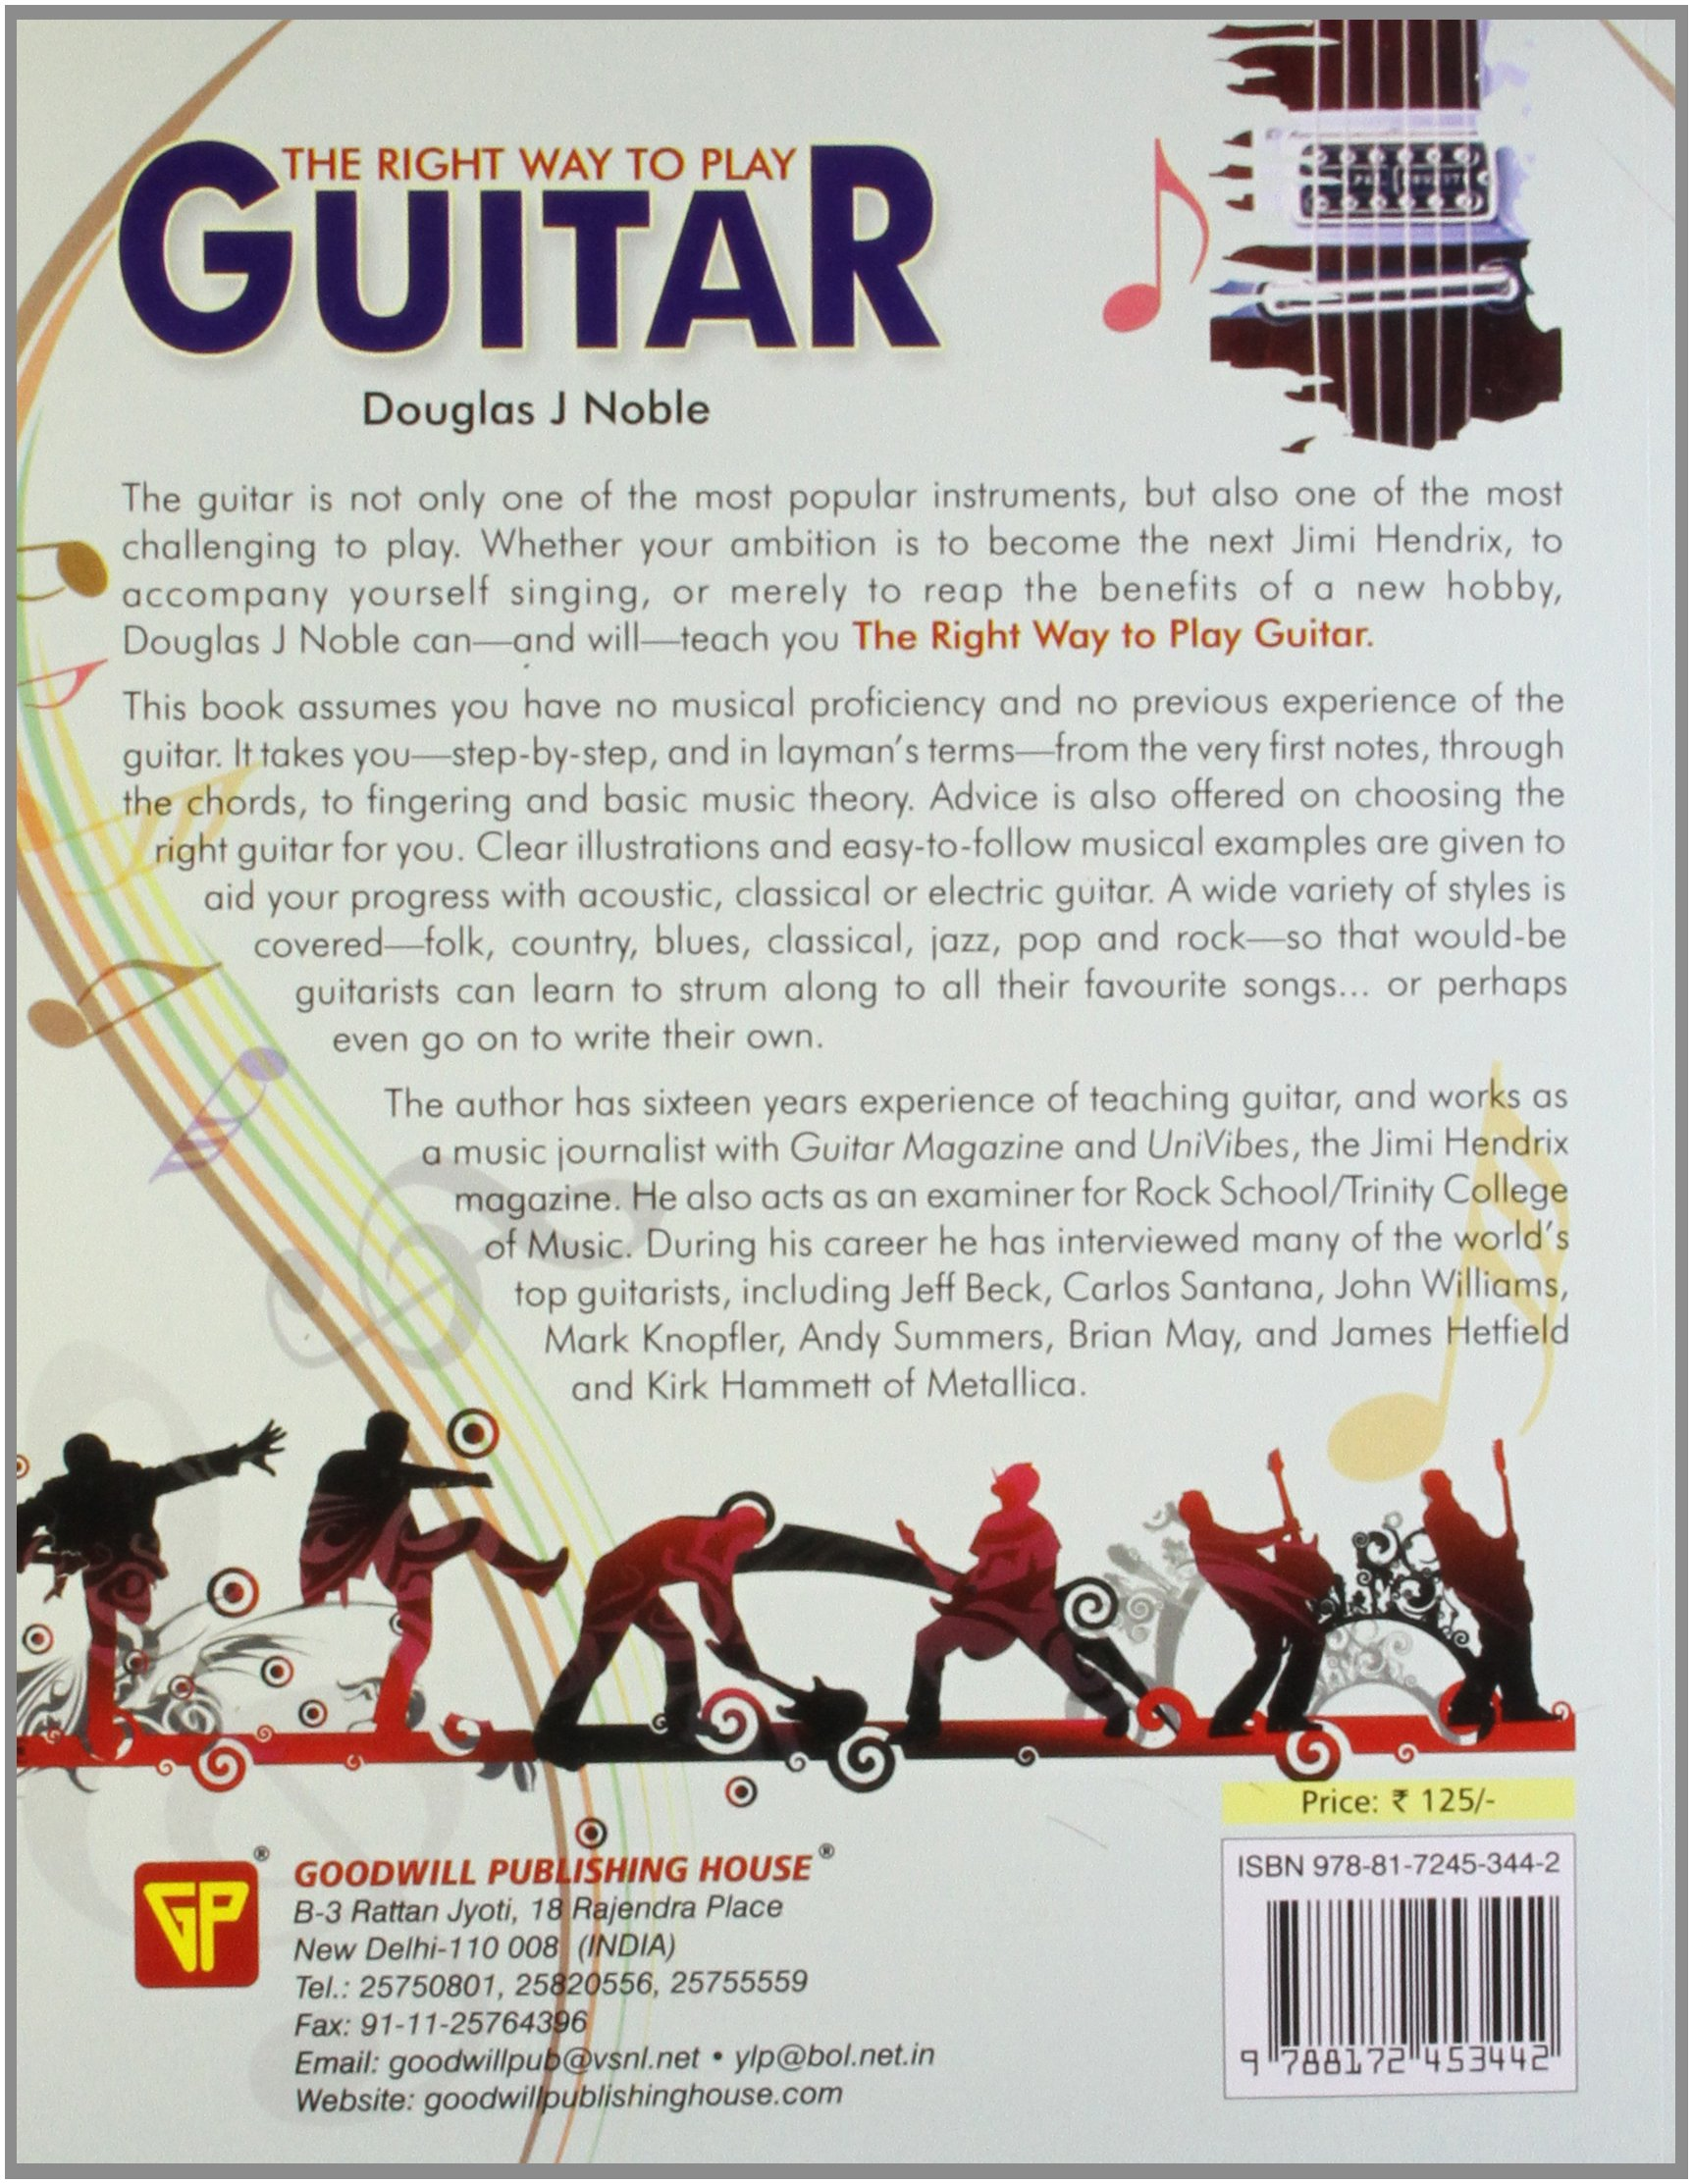 essay on playing guitar as a hobby  essay on playing guitar as a hobby